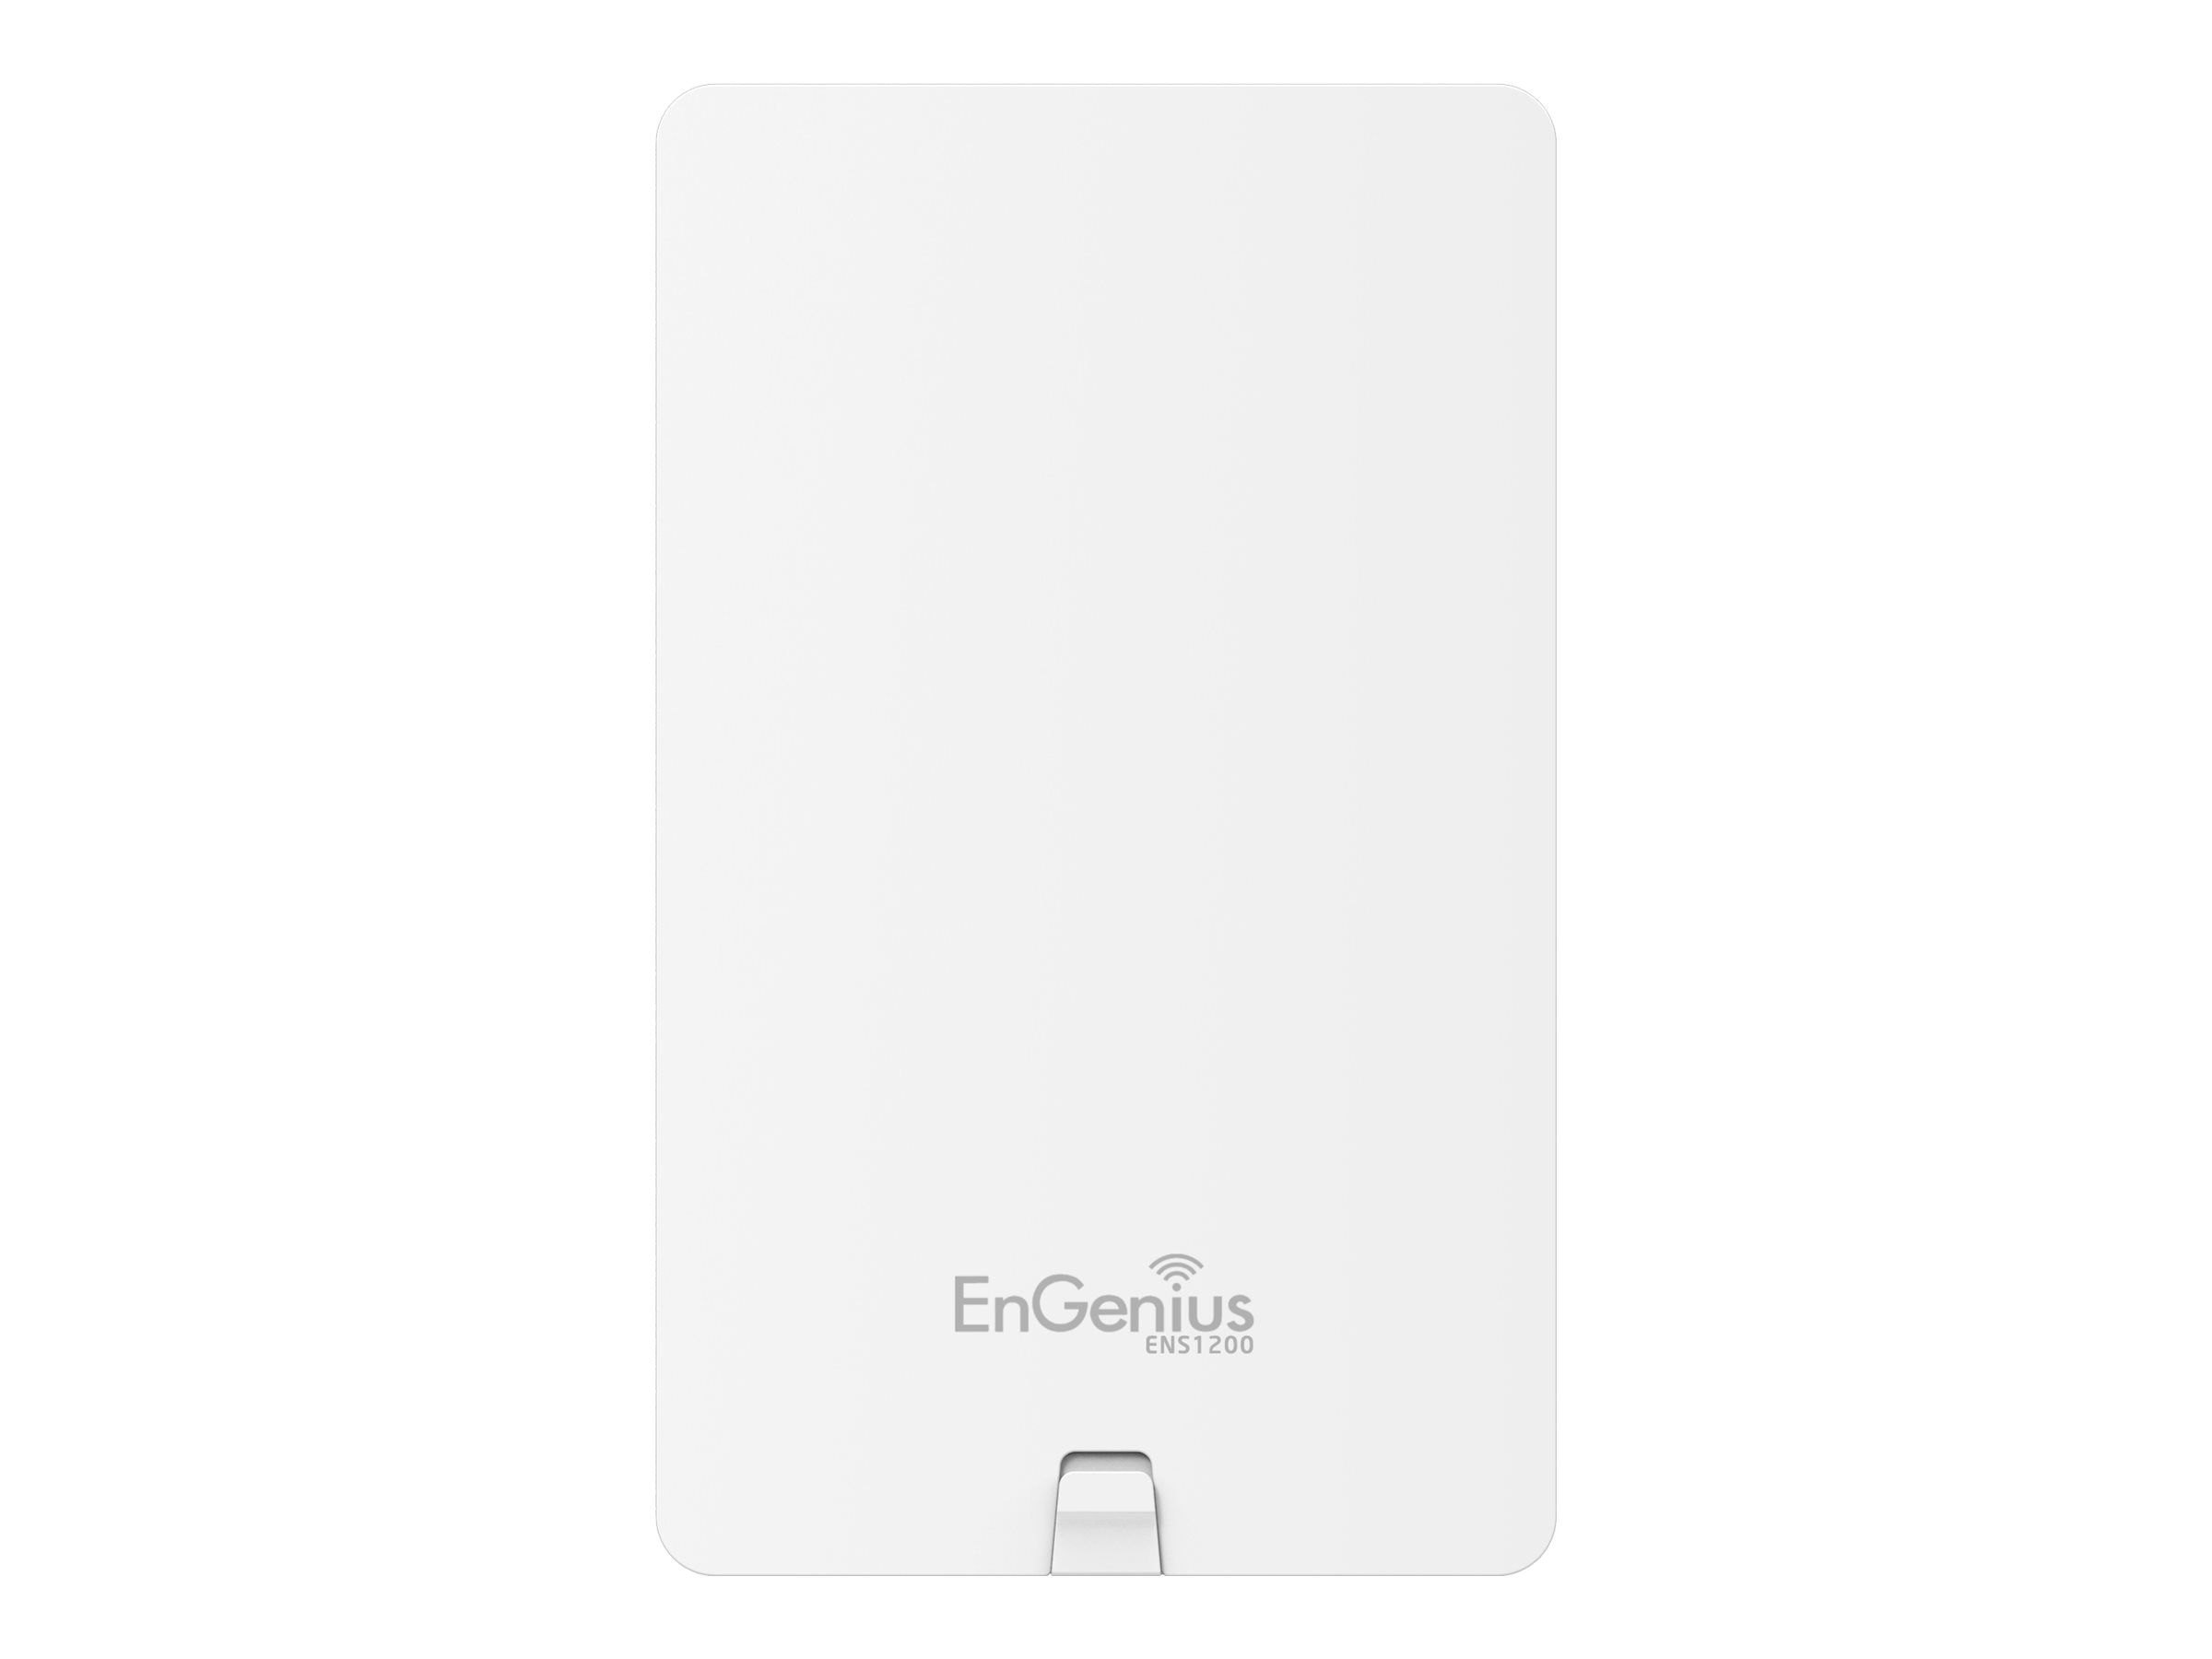 Engenius Technologies ENS1200 Image 1